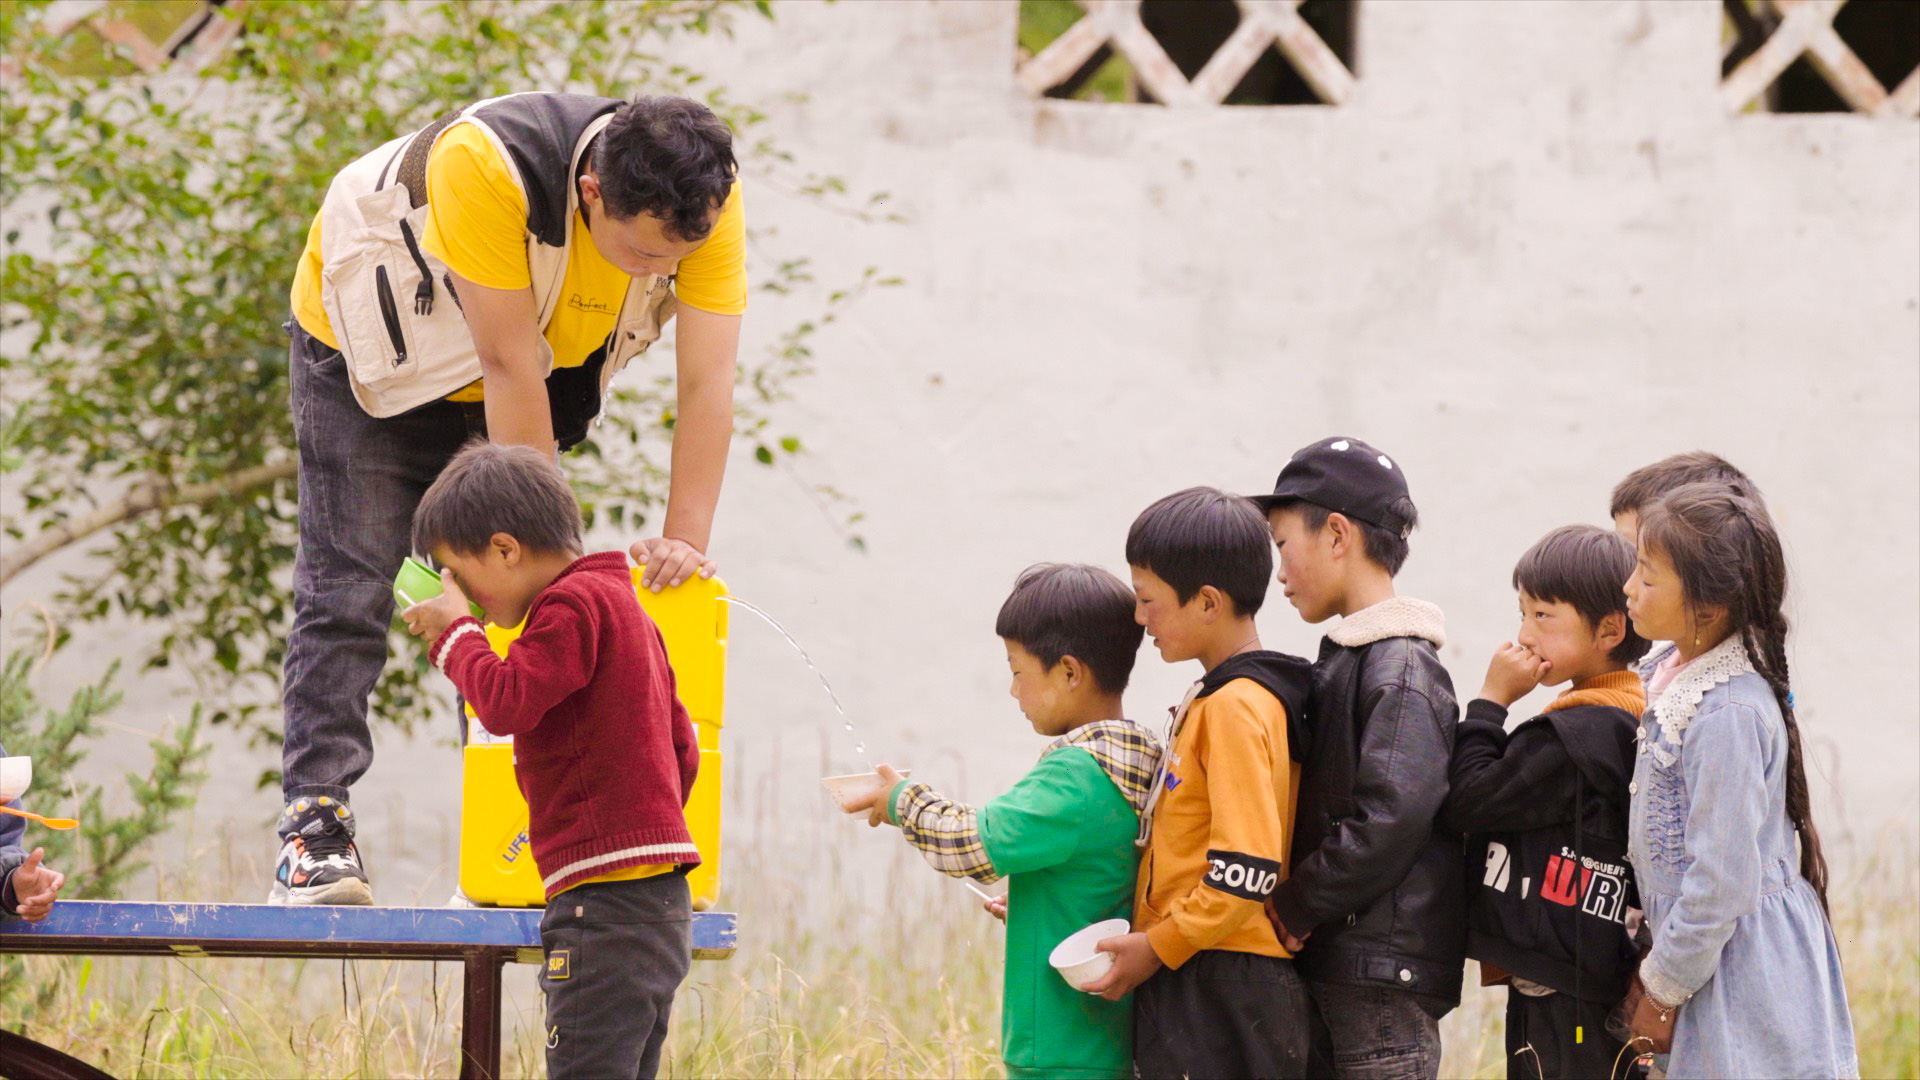 TangMama Distribute LifeSaver Jerrycans in China